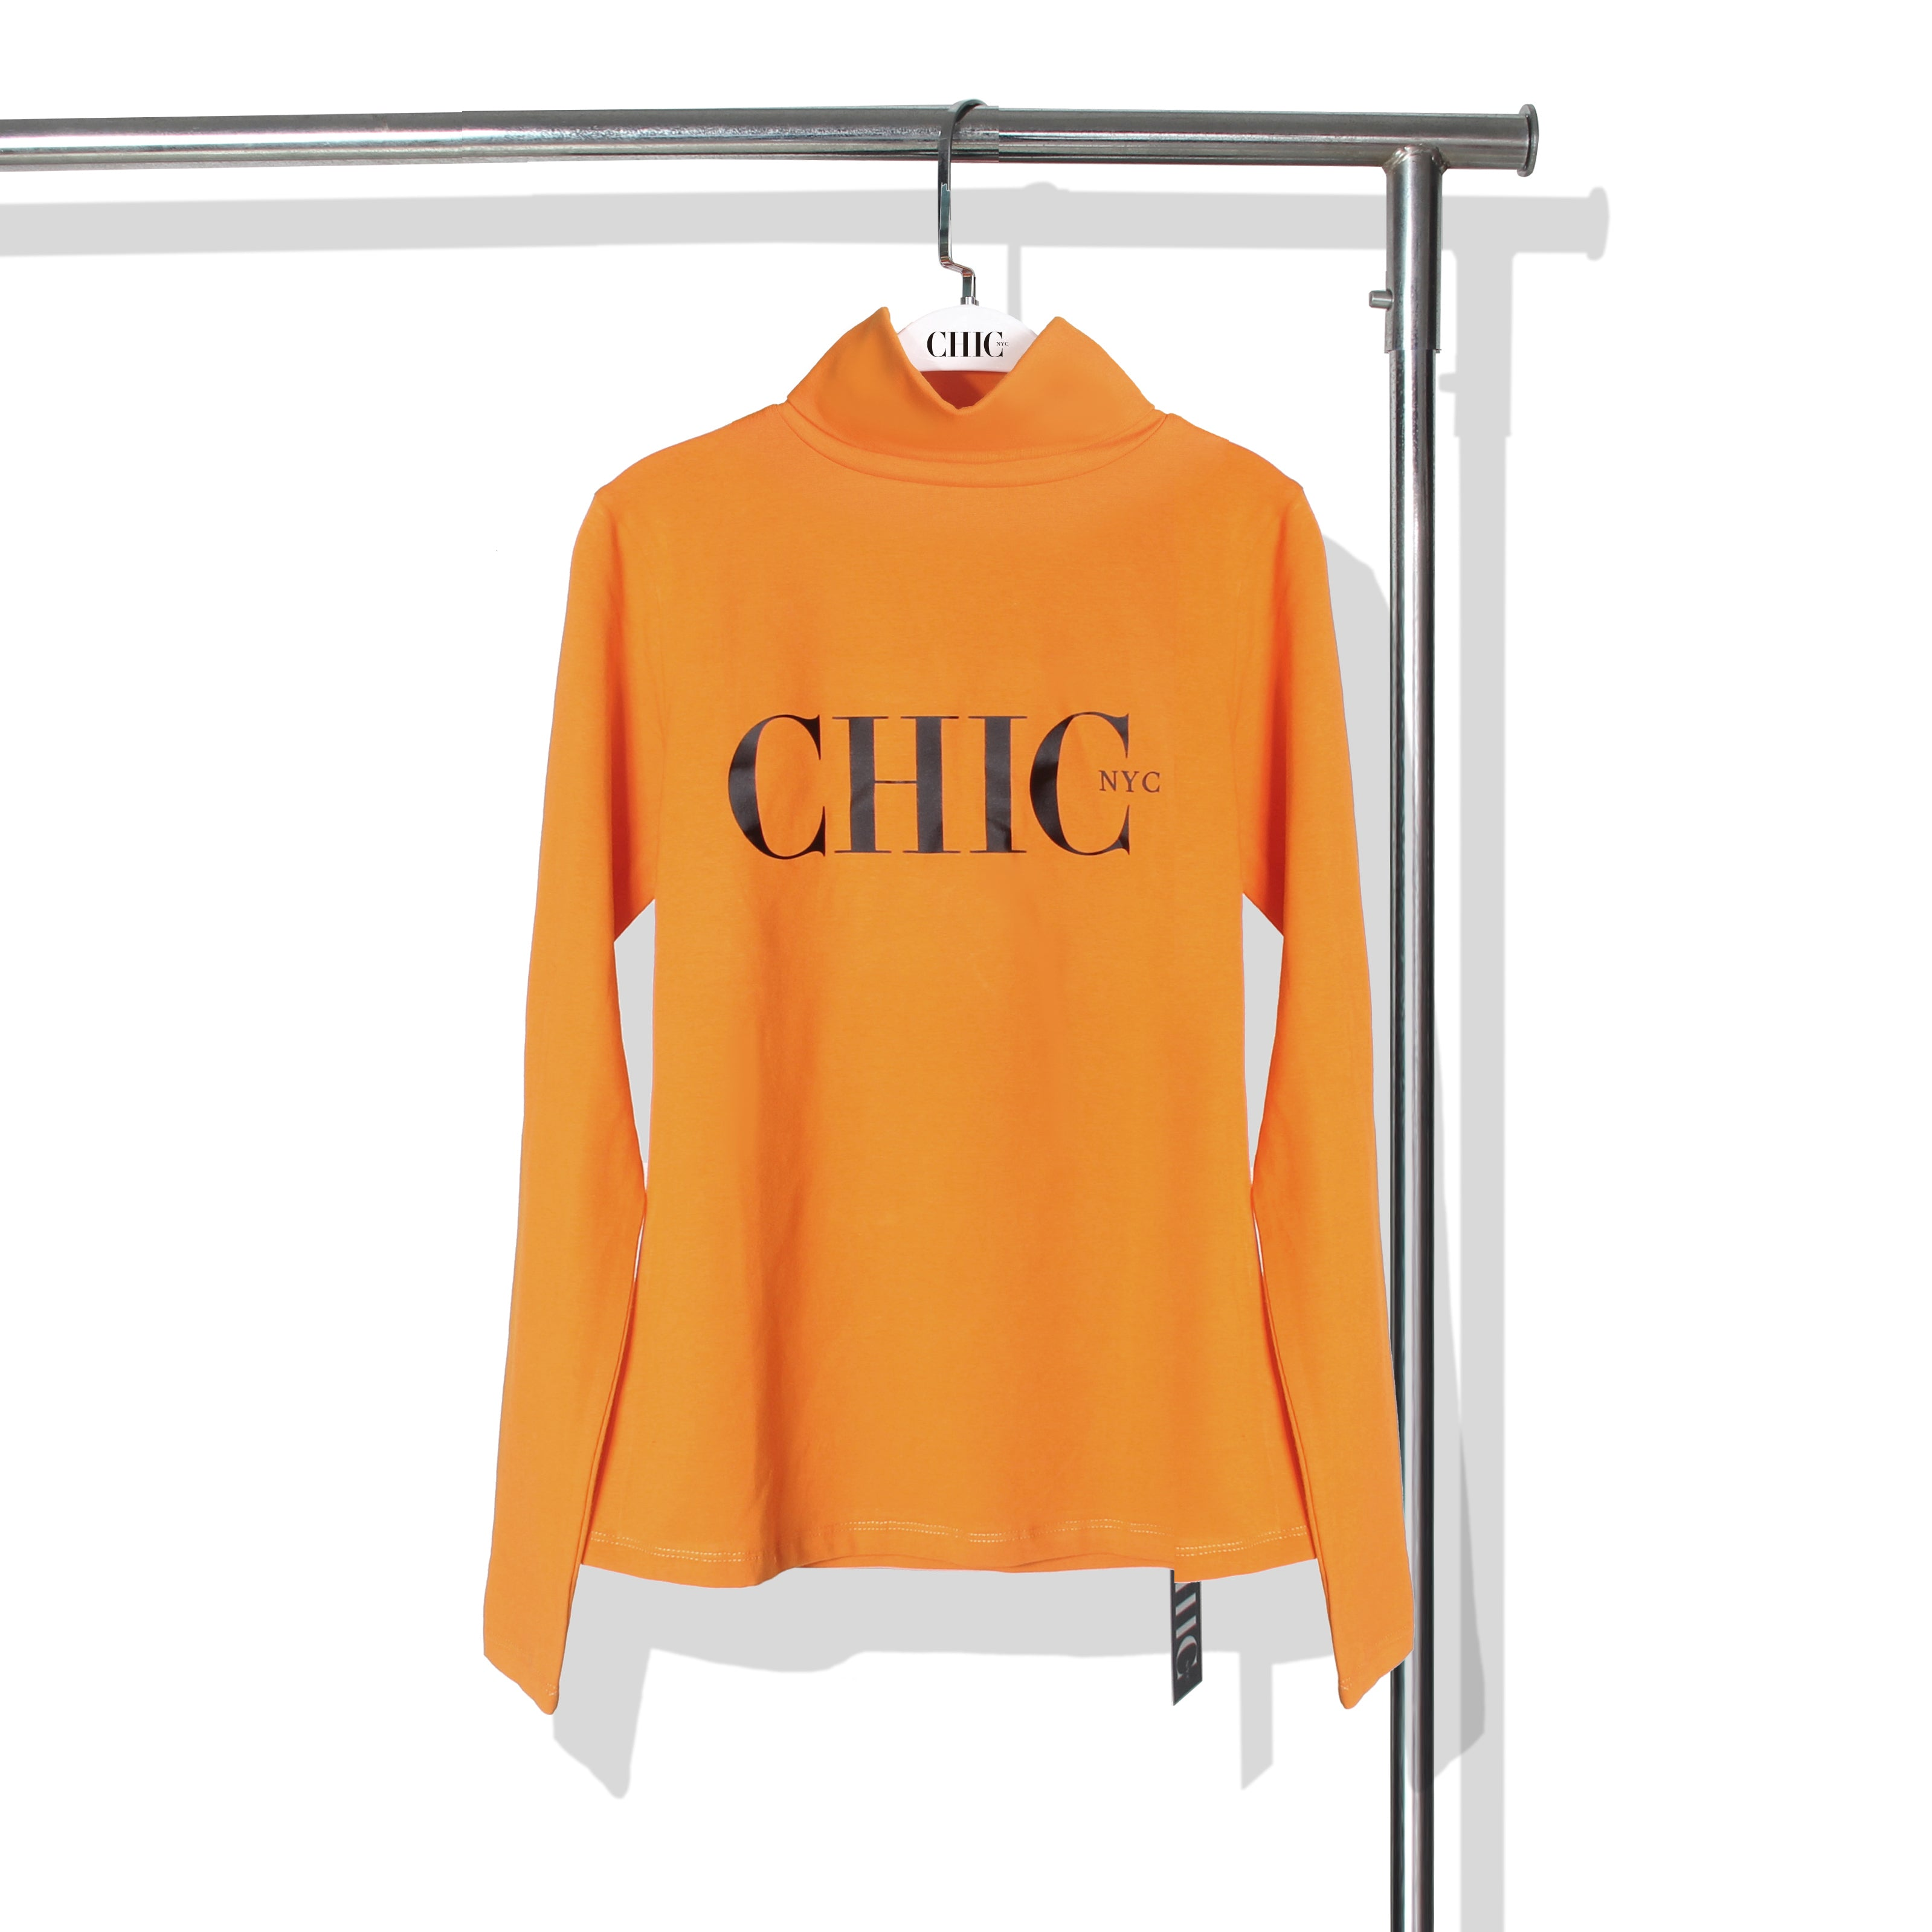 Chic NYC Turtle Neck - Orange